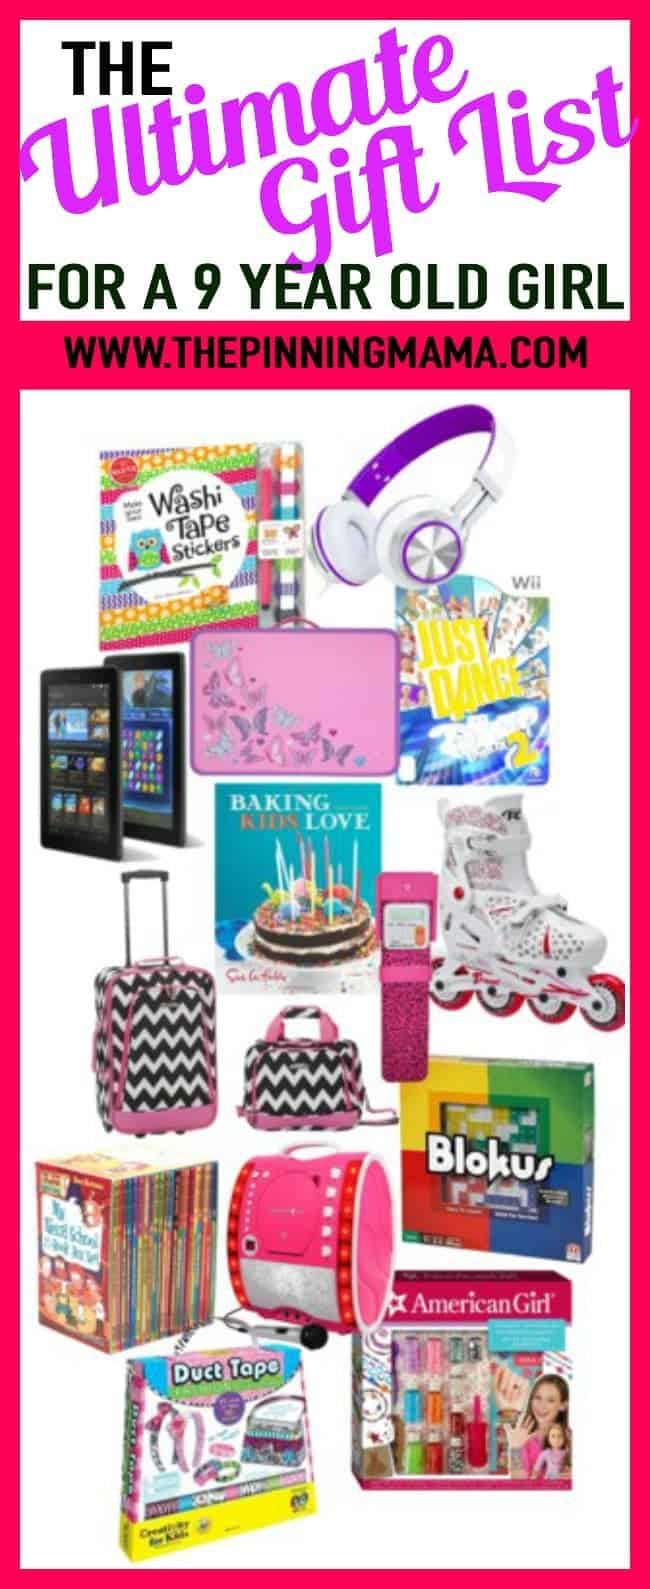 30ed5dc5a82 The BEST gift ideas for a 9 year old girl- includes ideas for games